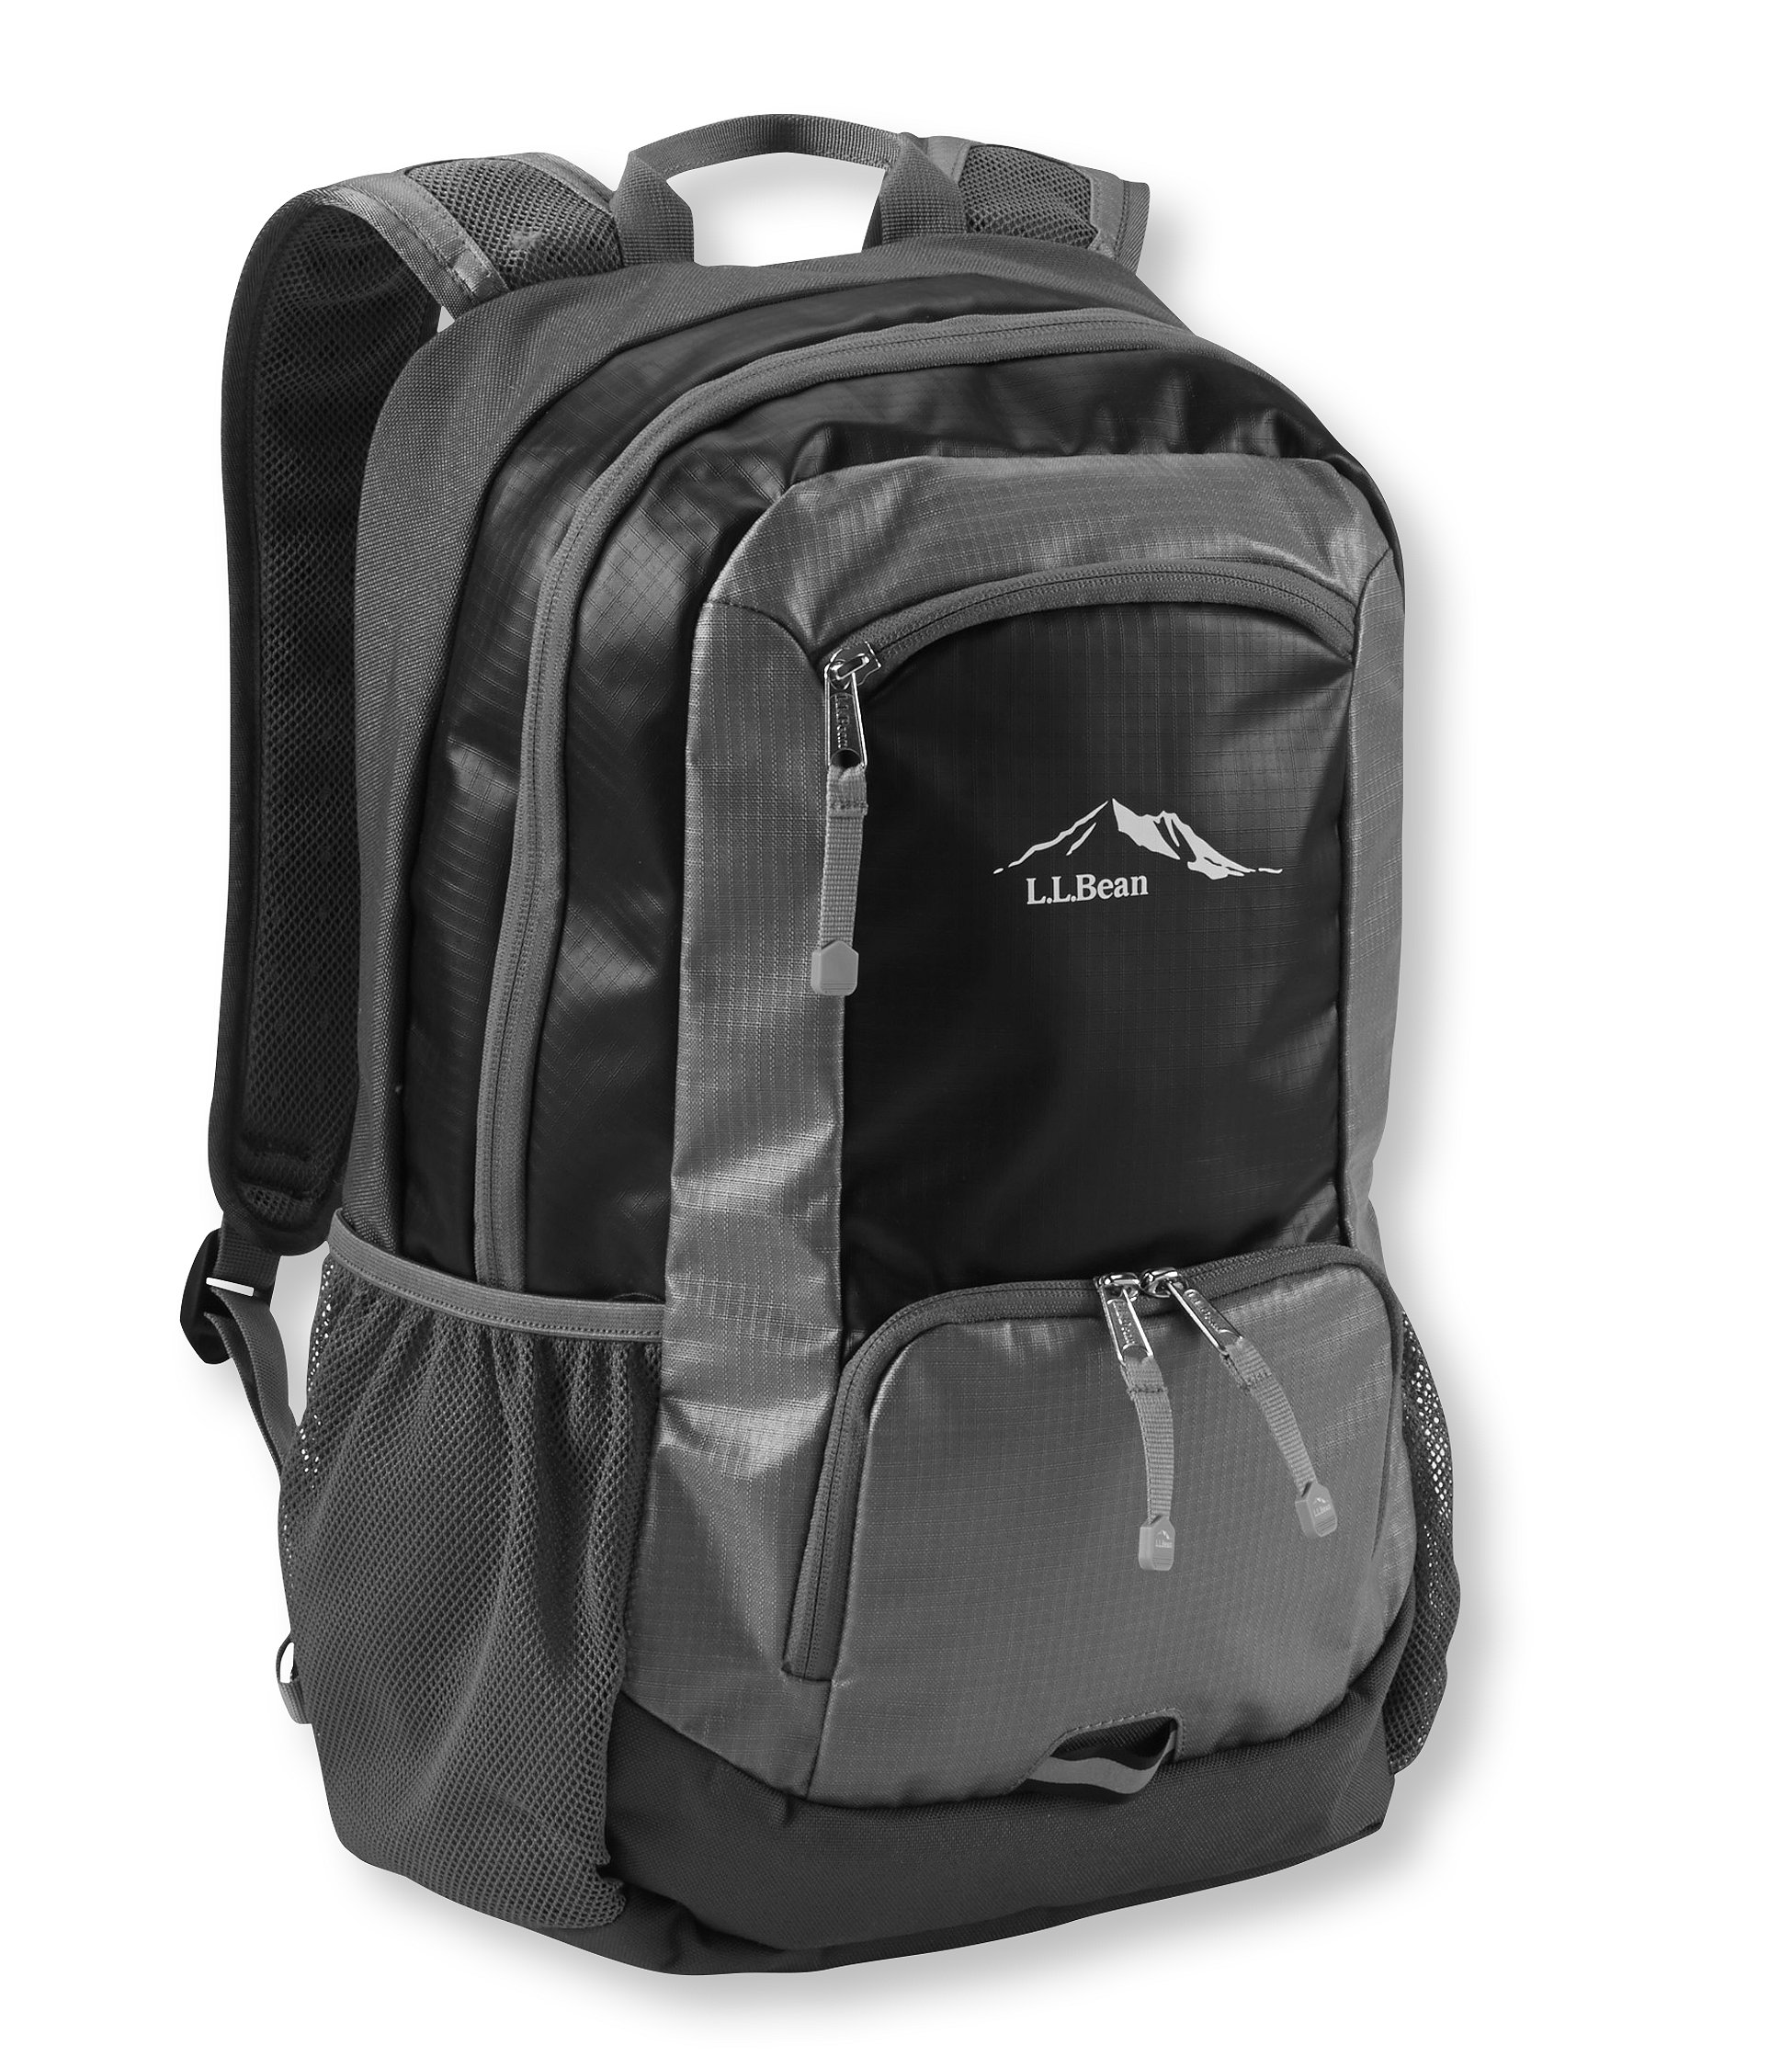 L.L.Bean Freestyle Backpack